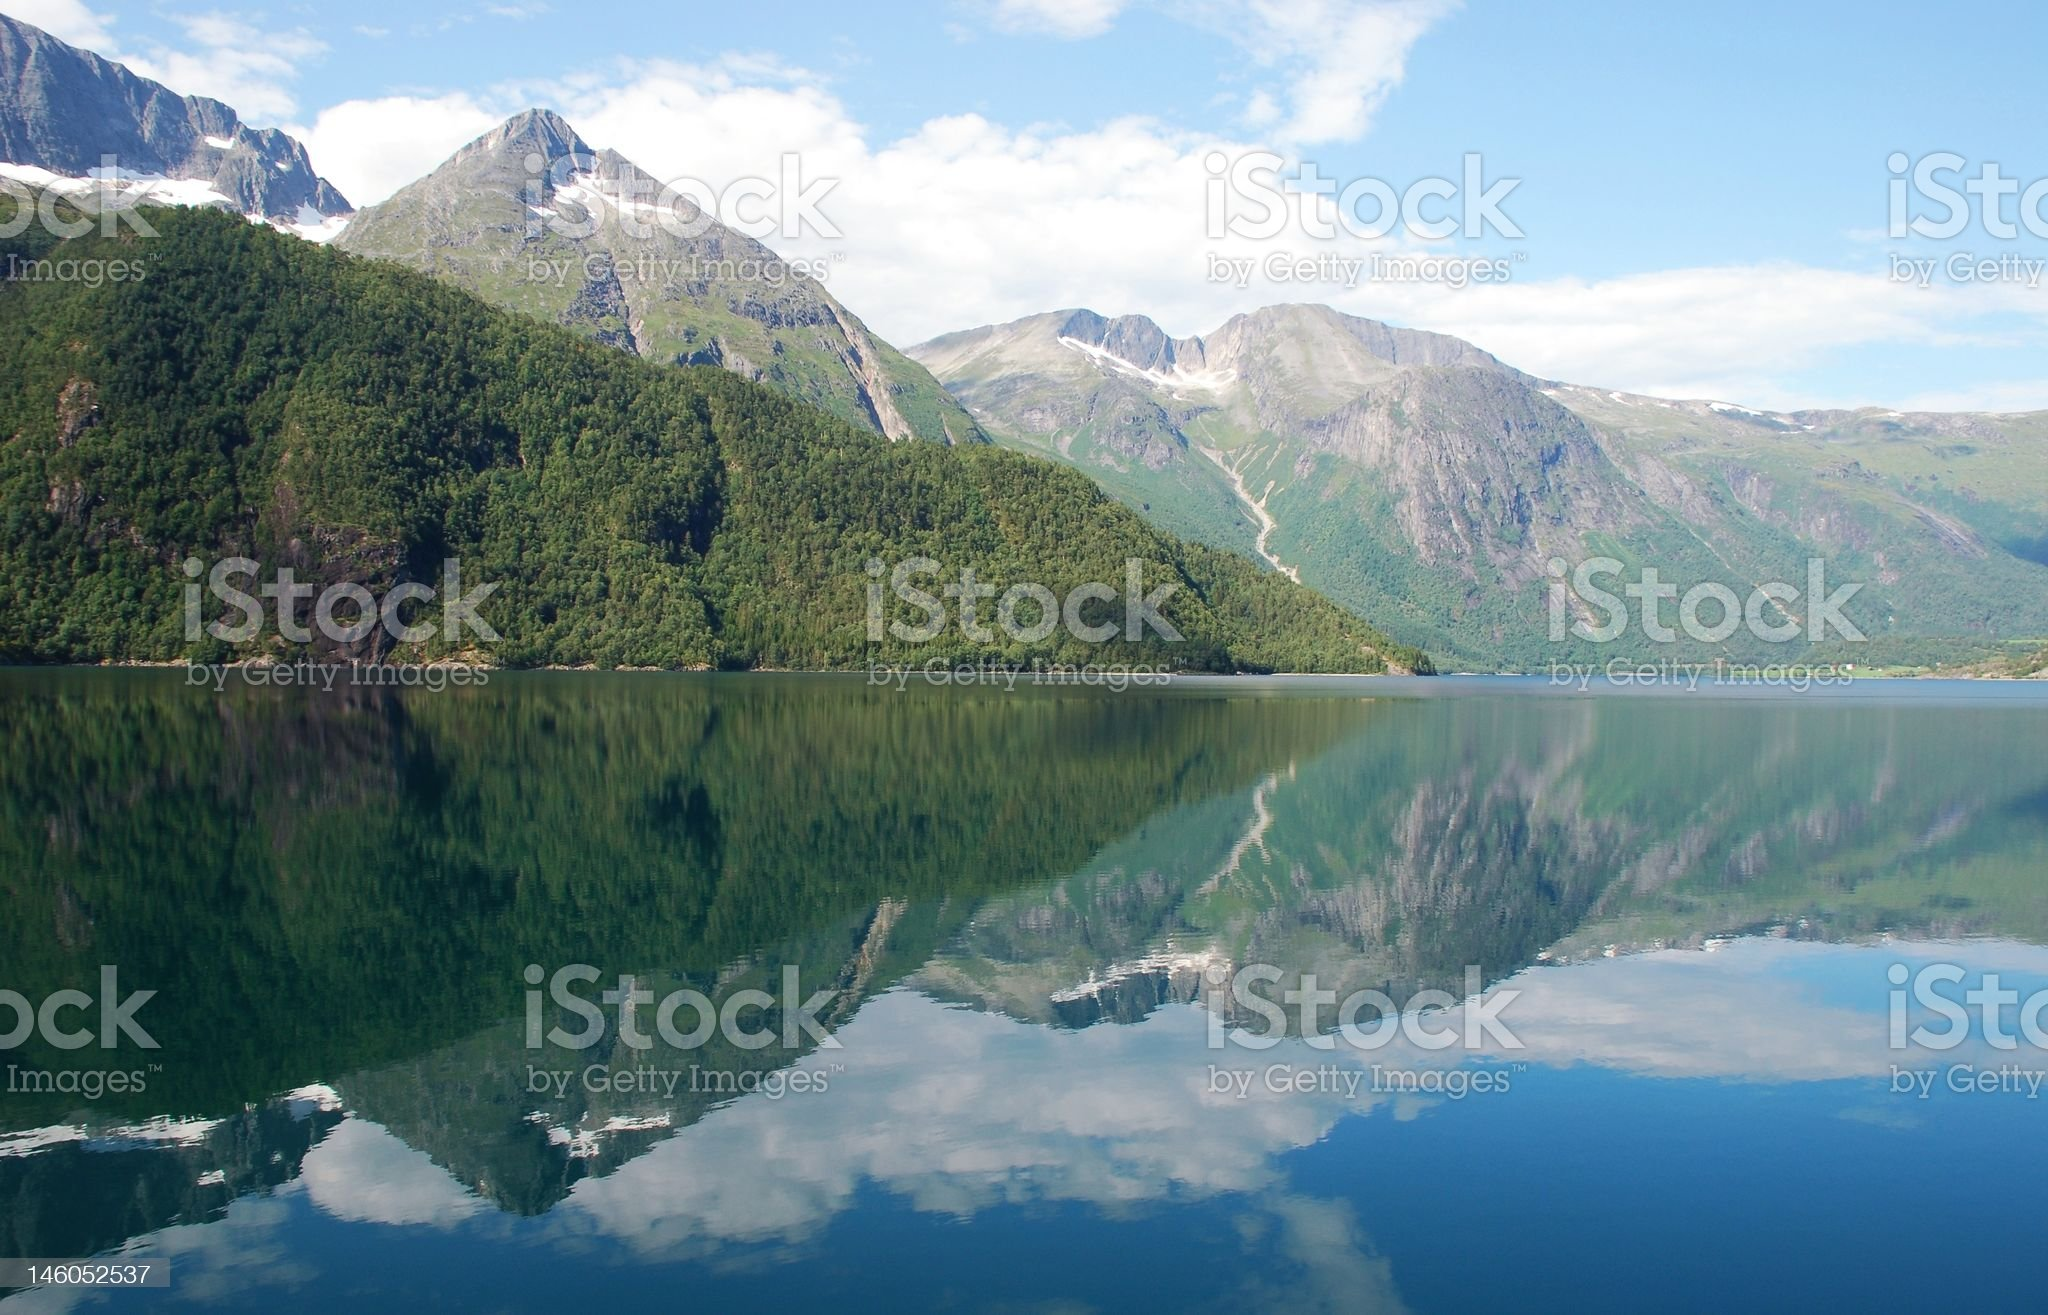 Nature Scenery royalty-free stock photo